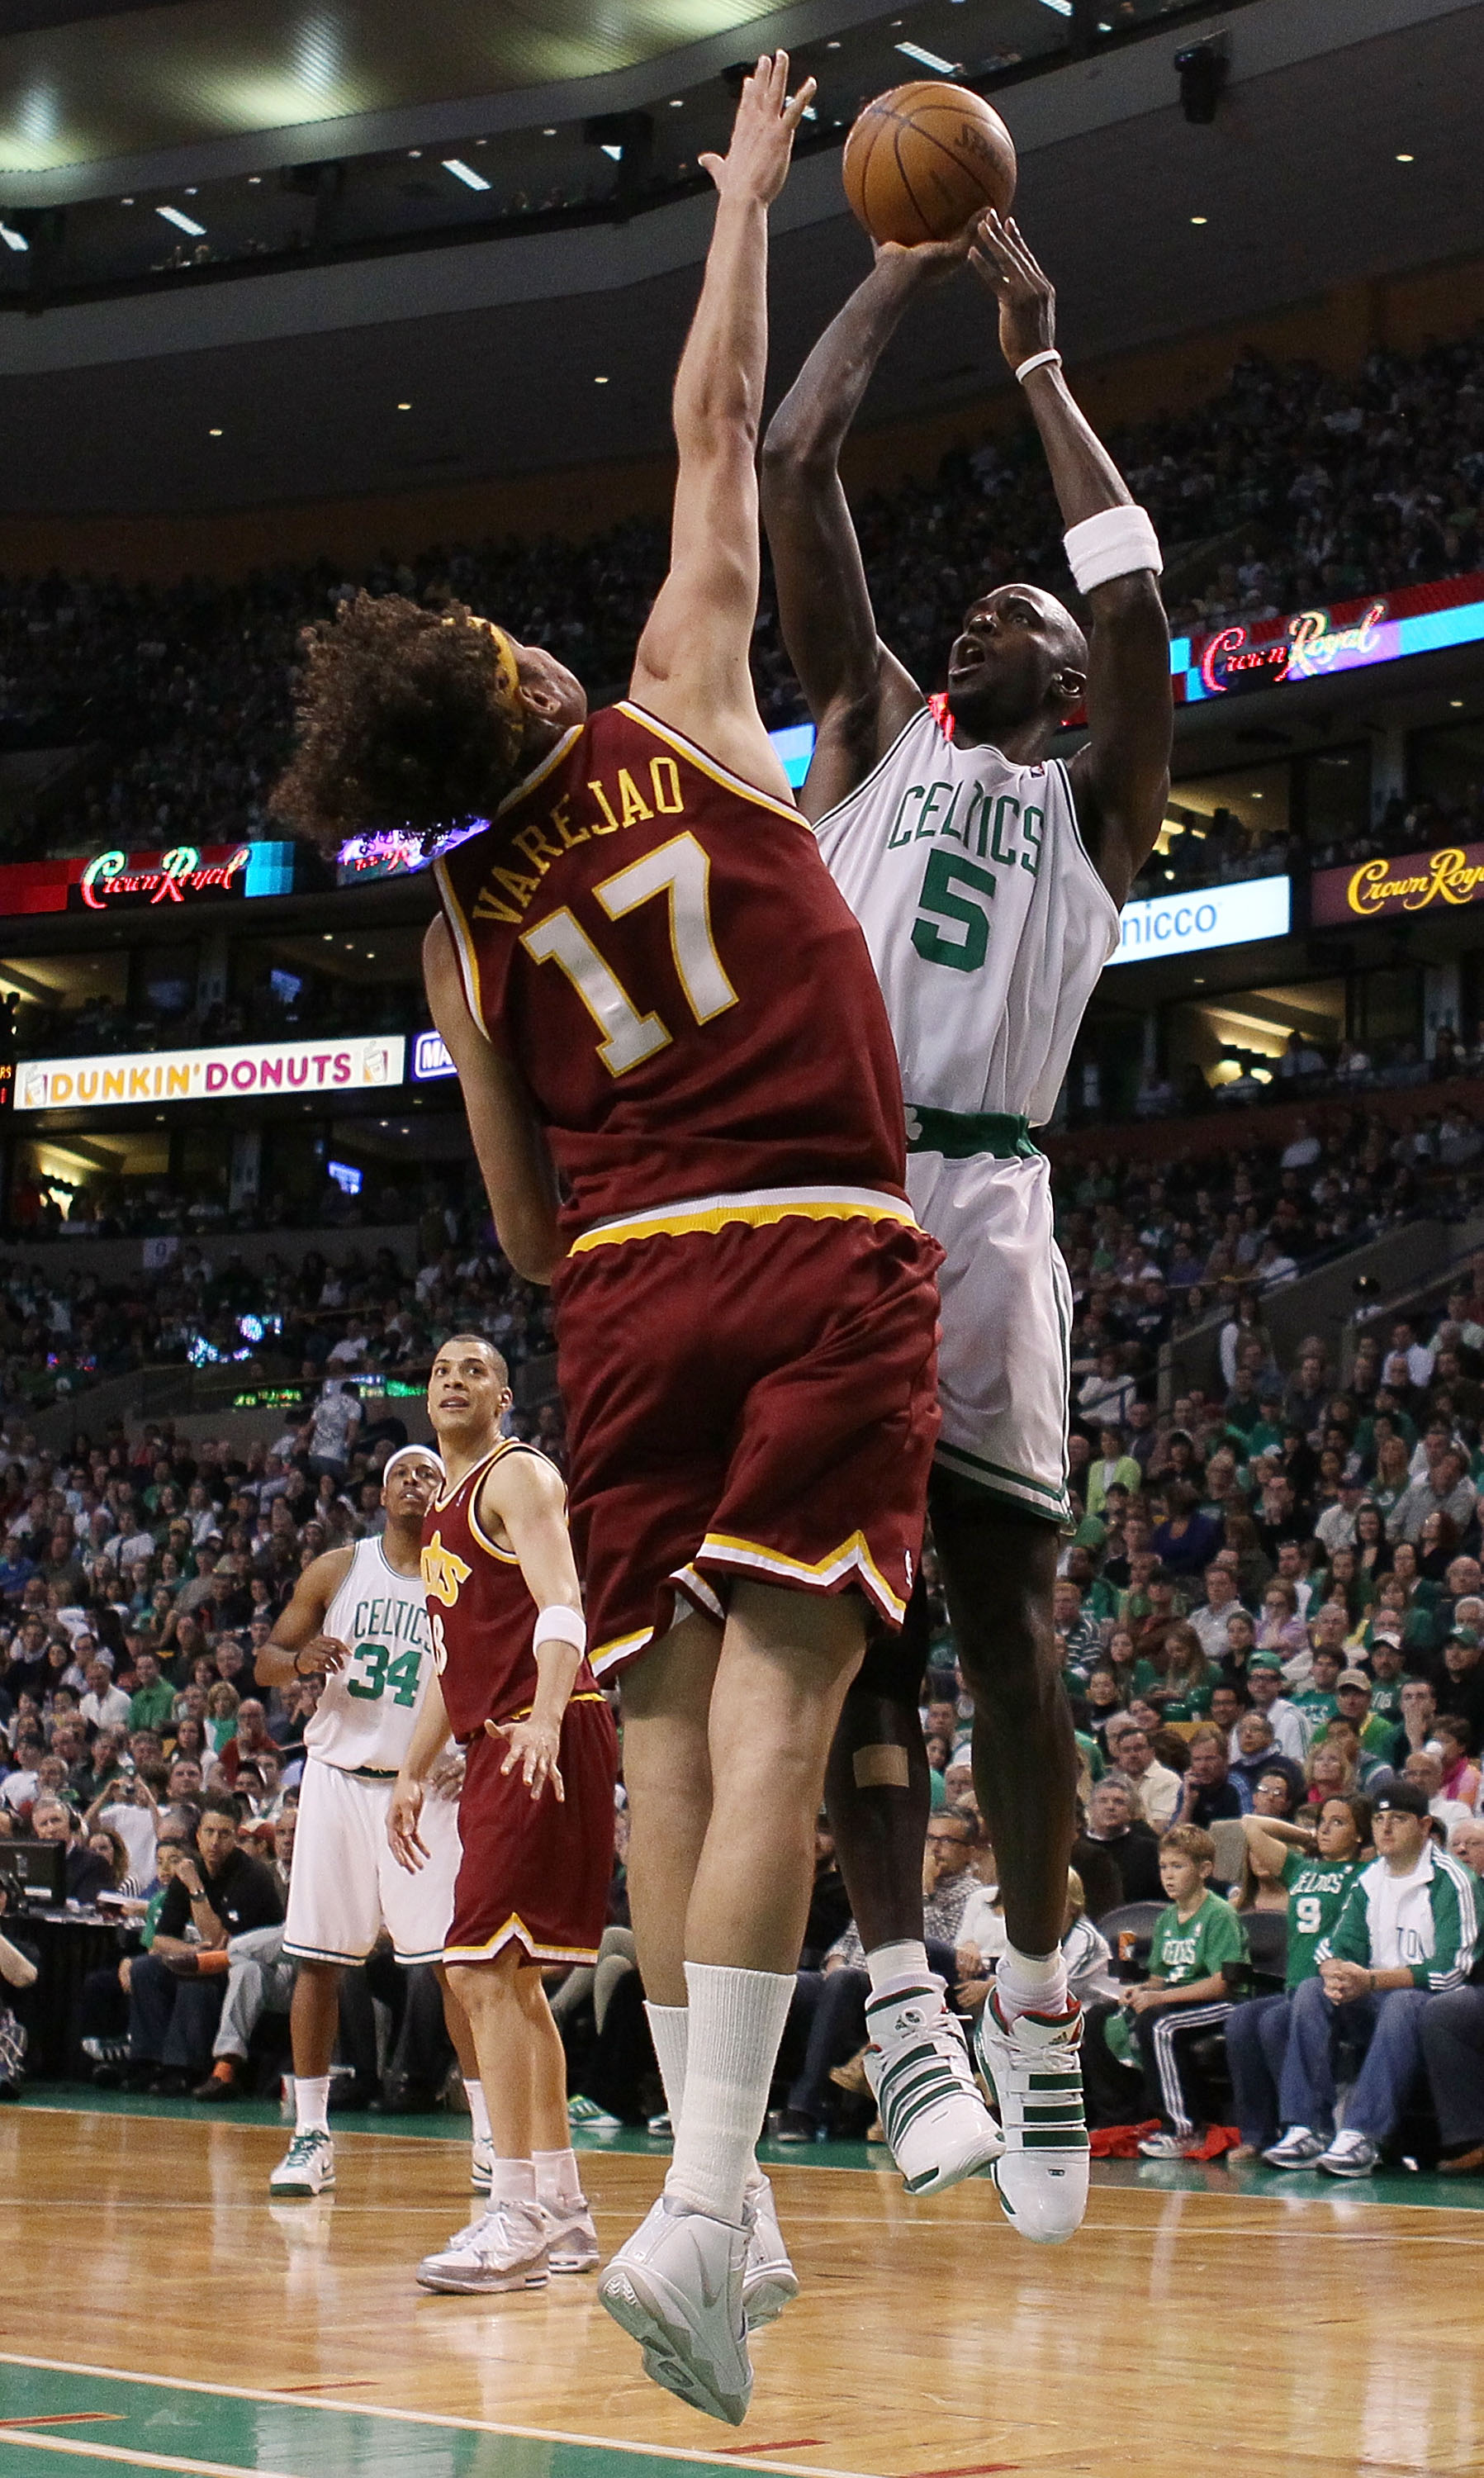 BOSTON - MAY 09:  Kevin Garnett #5 of the Boston Celtics takes a shot as Anderson Varejao #17 of the Cleveland Cavaliers defends during Game Four of the Eastern Conference Semifinals of the 2010 NBA playoffs at TD Garden on May 9, 2010 in Boston, Massachu